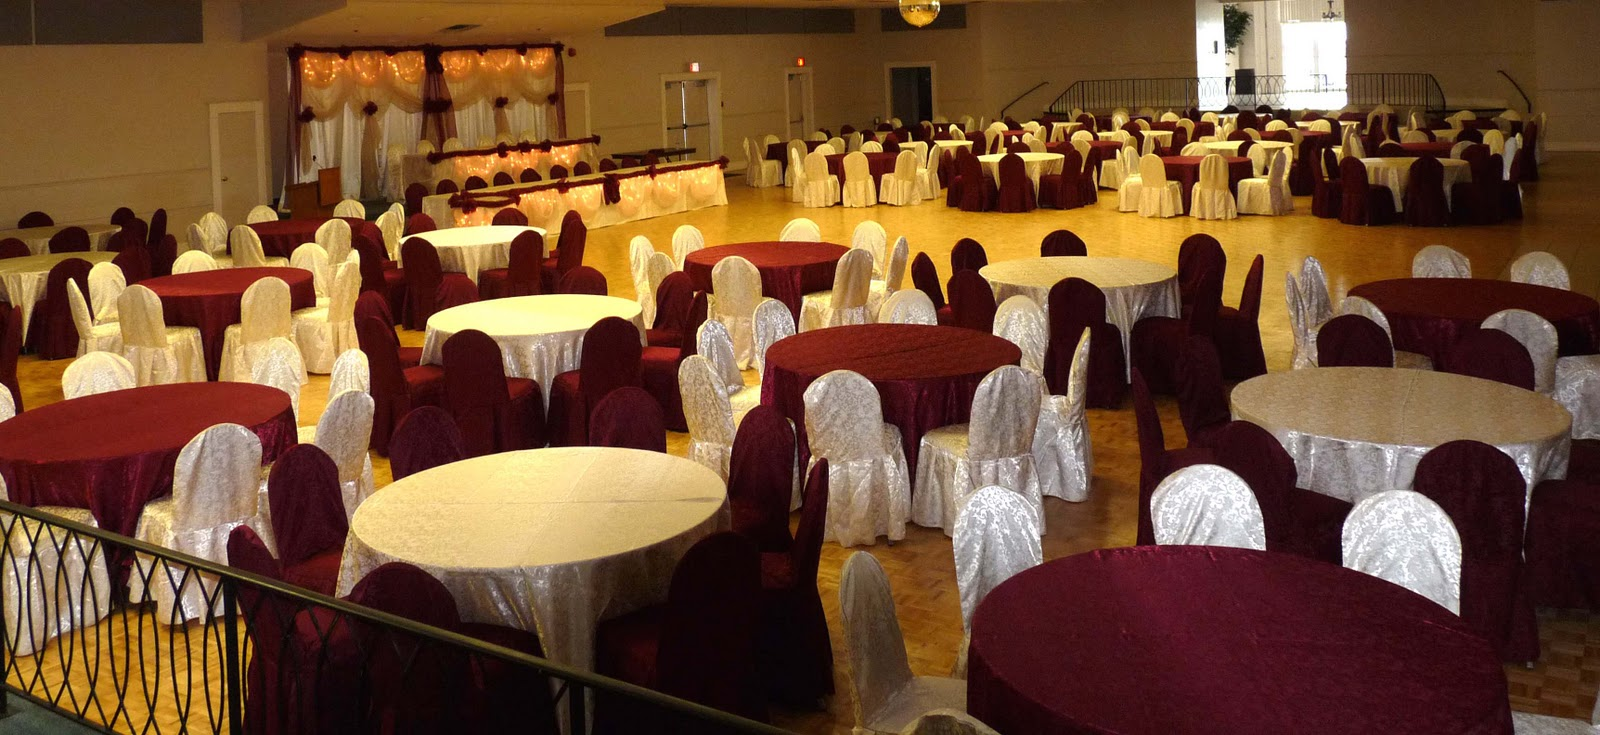 chair cover rentals gta black metal chairs www.decor-rent.com: toronto and wedding decorations 2011. by www.decor-rent.com